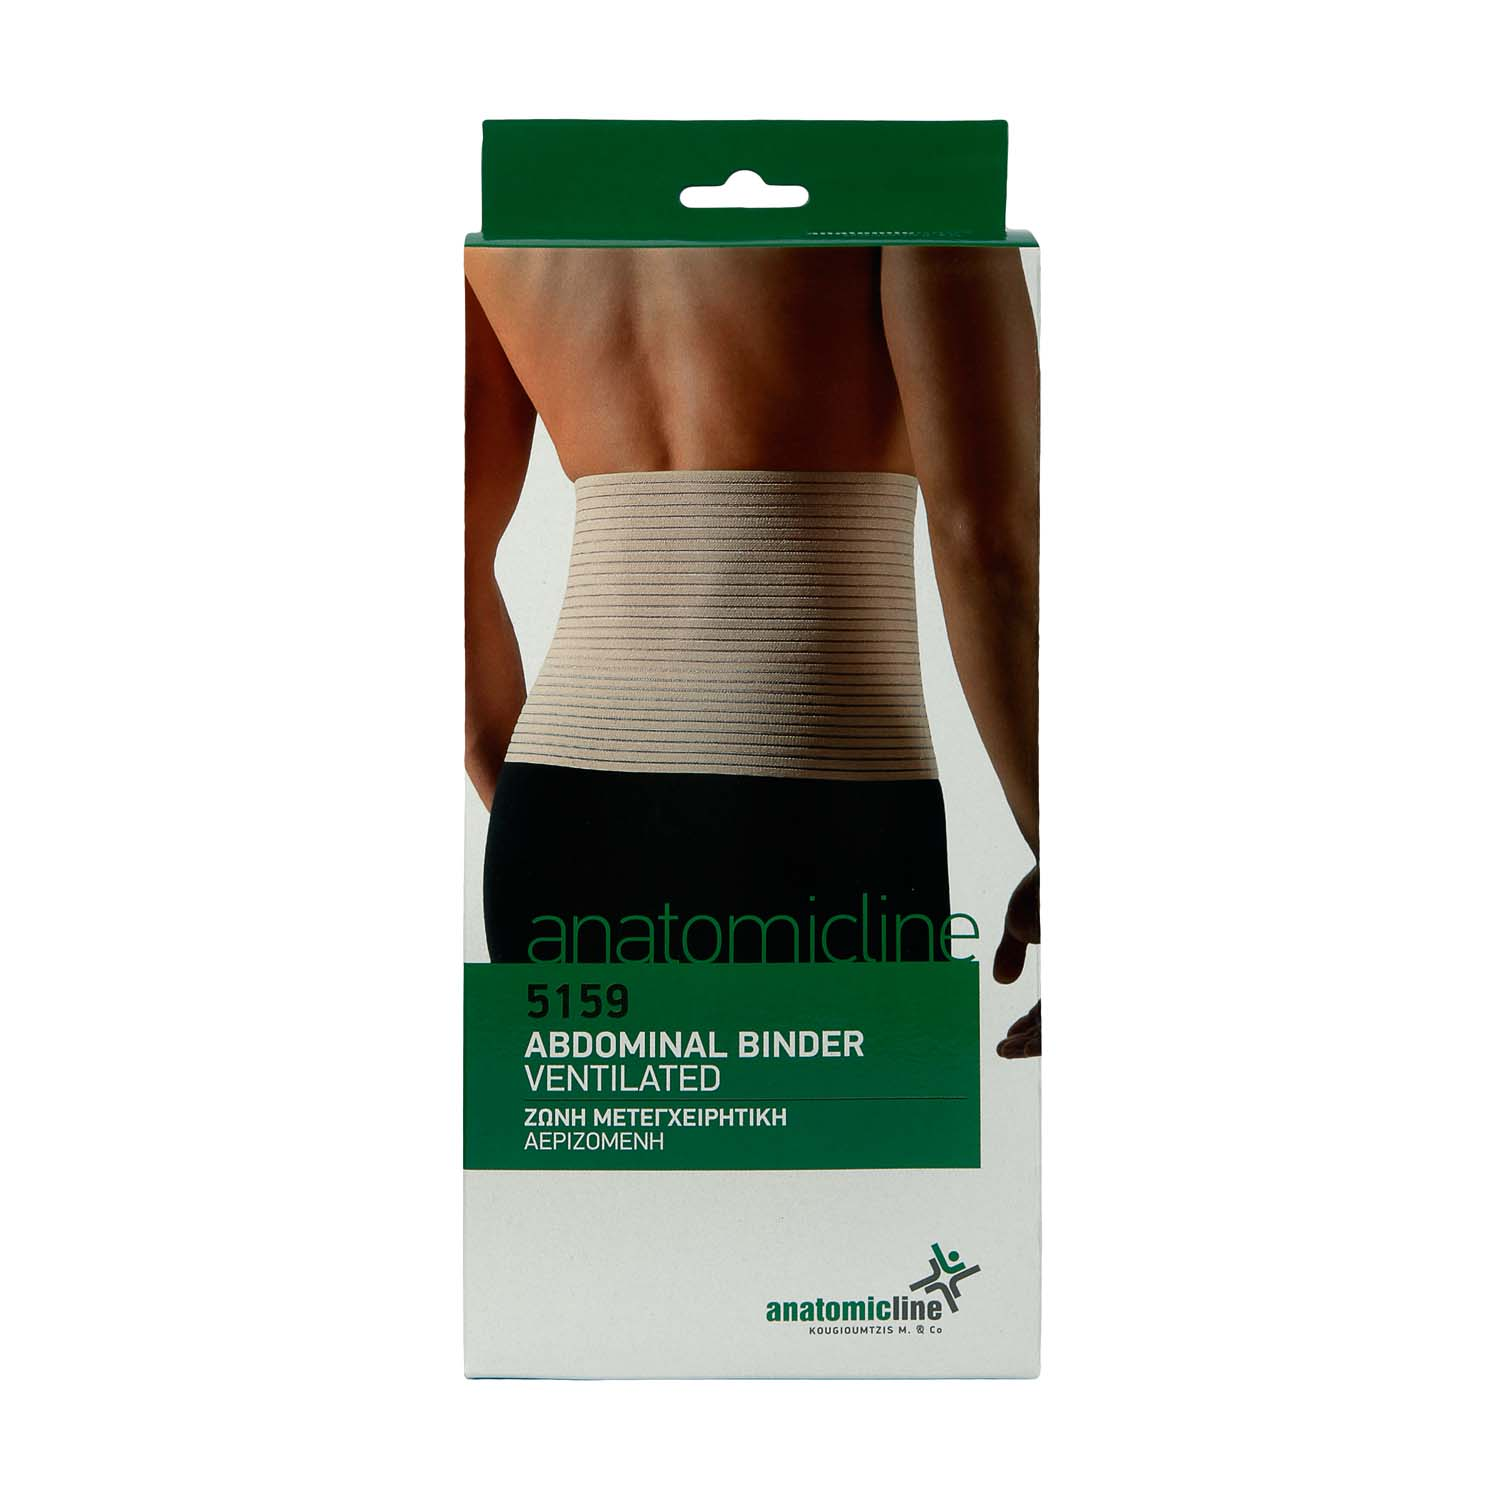 Abdominal Binder - ventilated